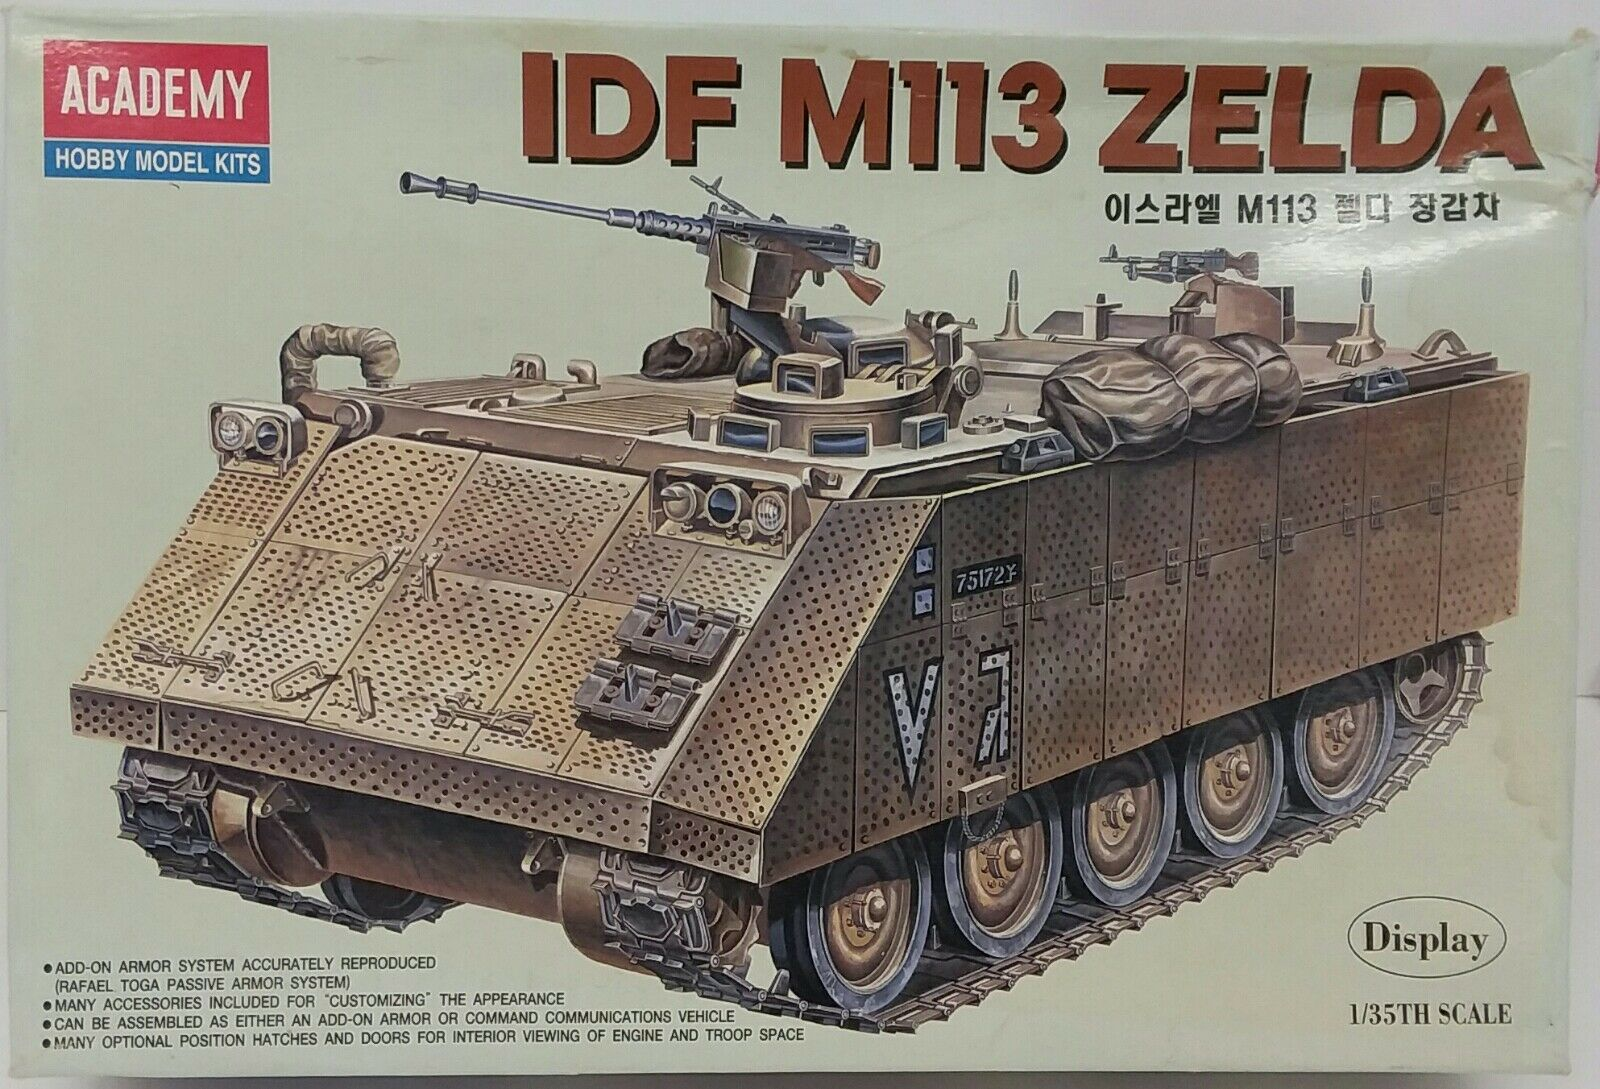 I.D.F. M113 ZELDAACADEMY MODEL KIT 1 35 SCALE